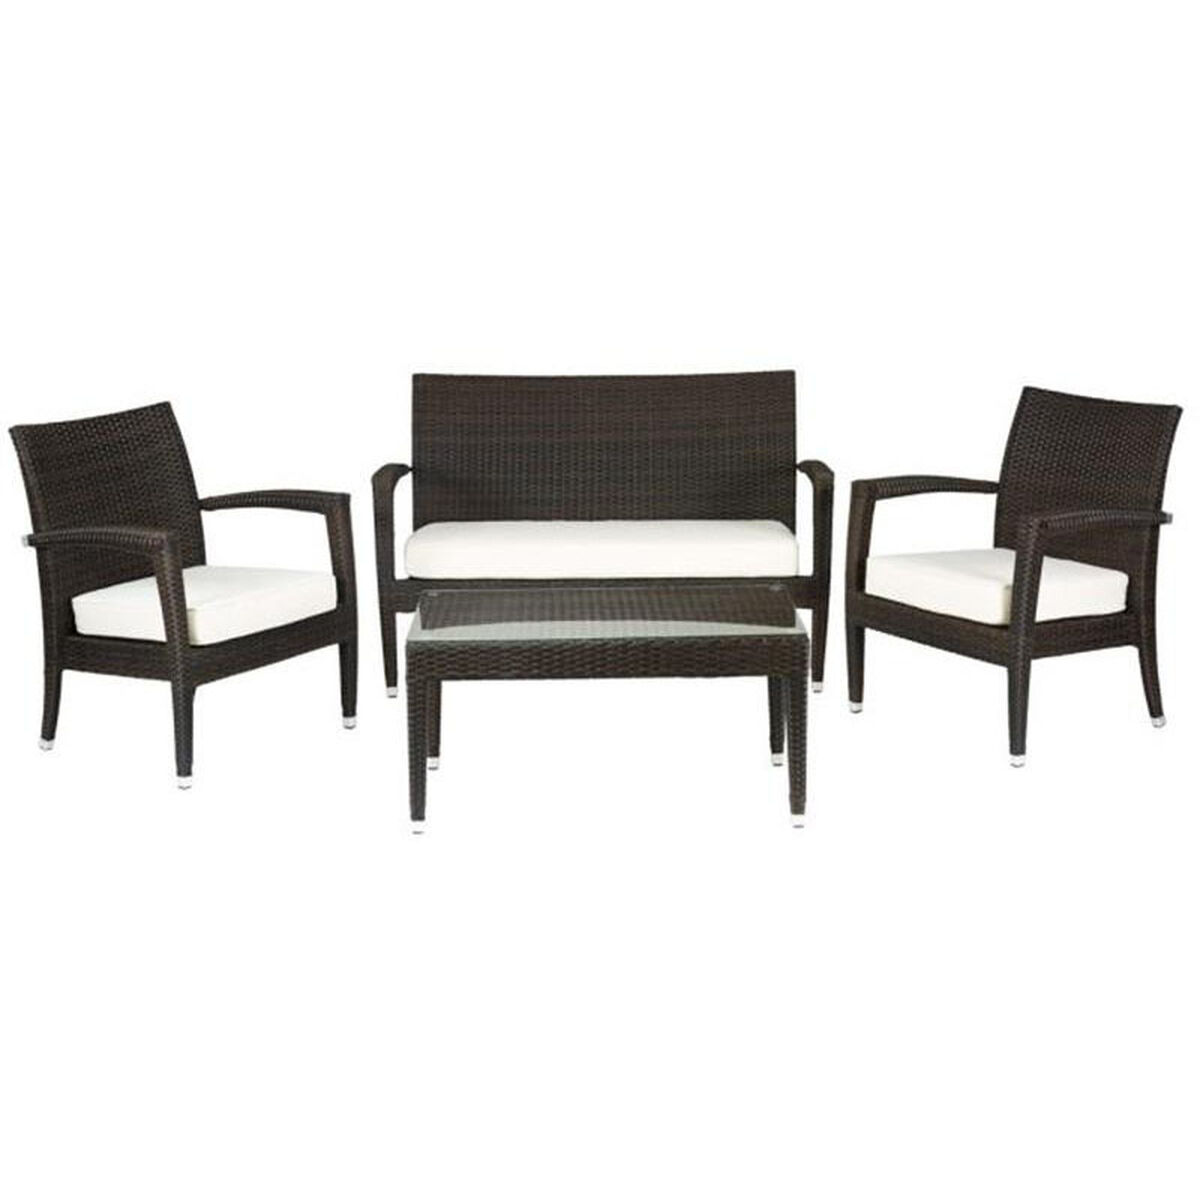 Furniture For Less Miami: Miami Beach Collection Outdoor Wicker Love Seat With Arms